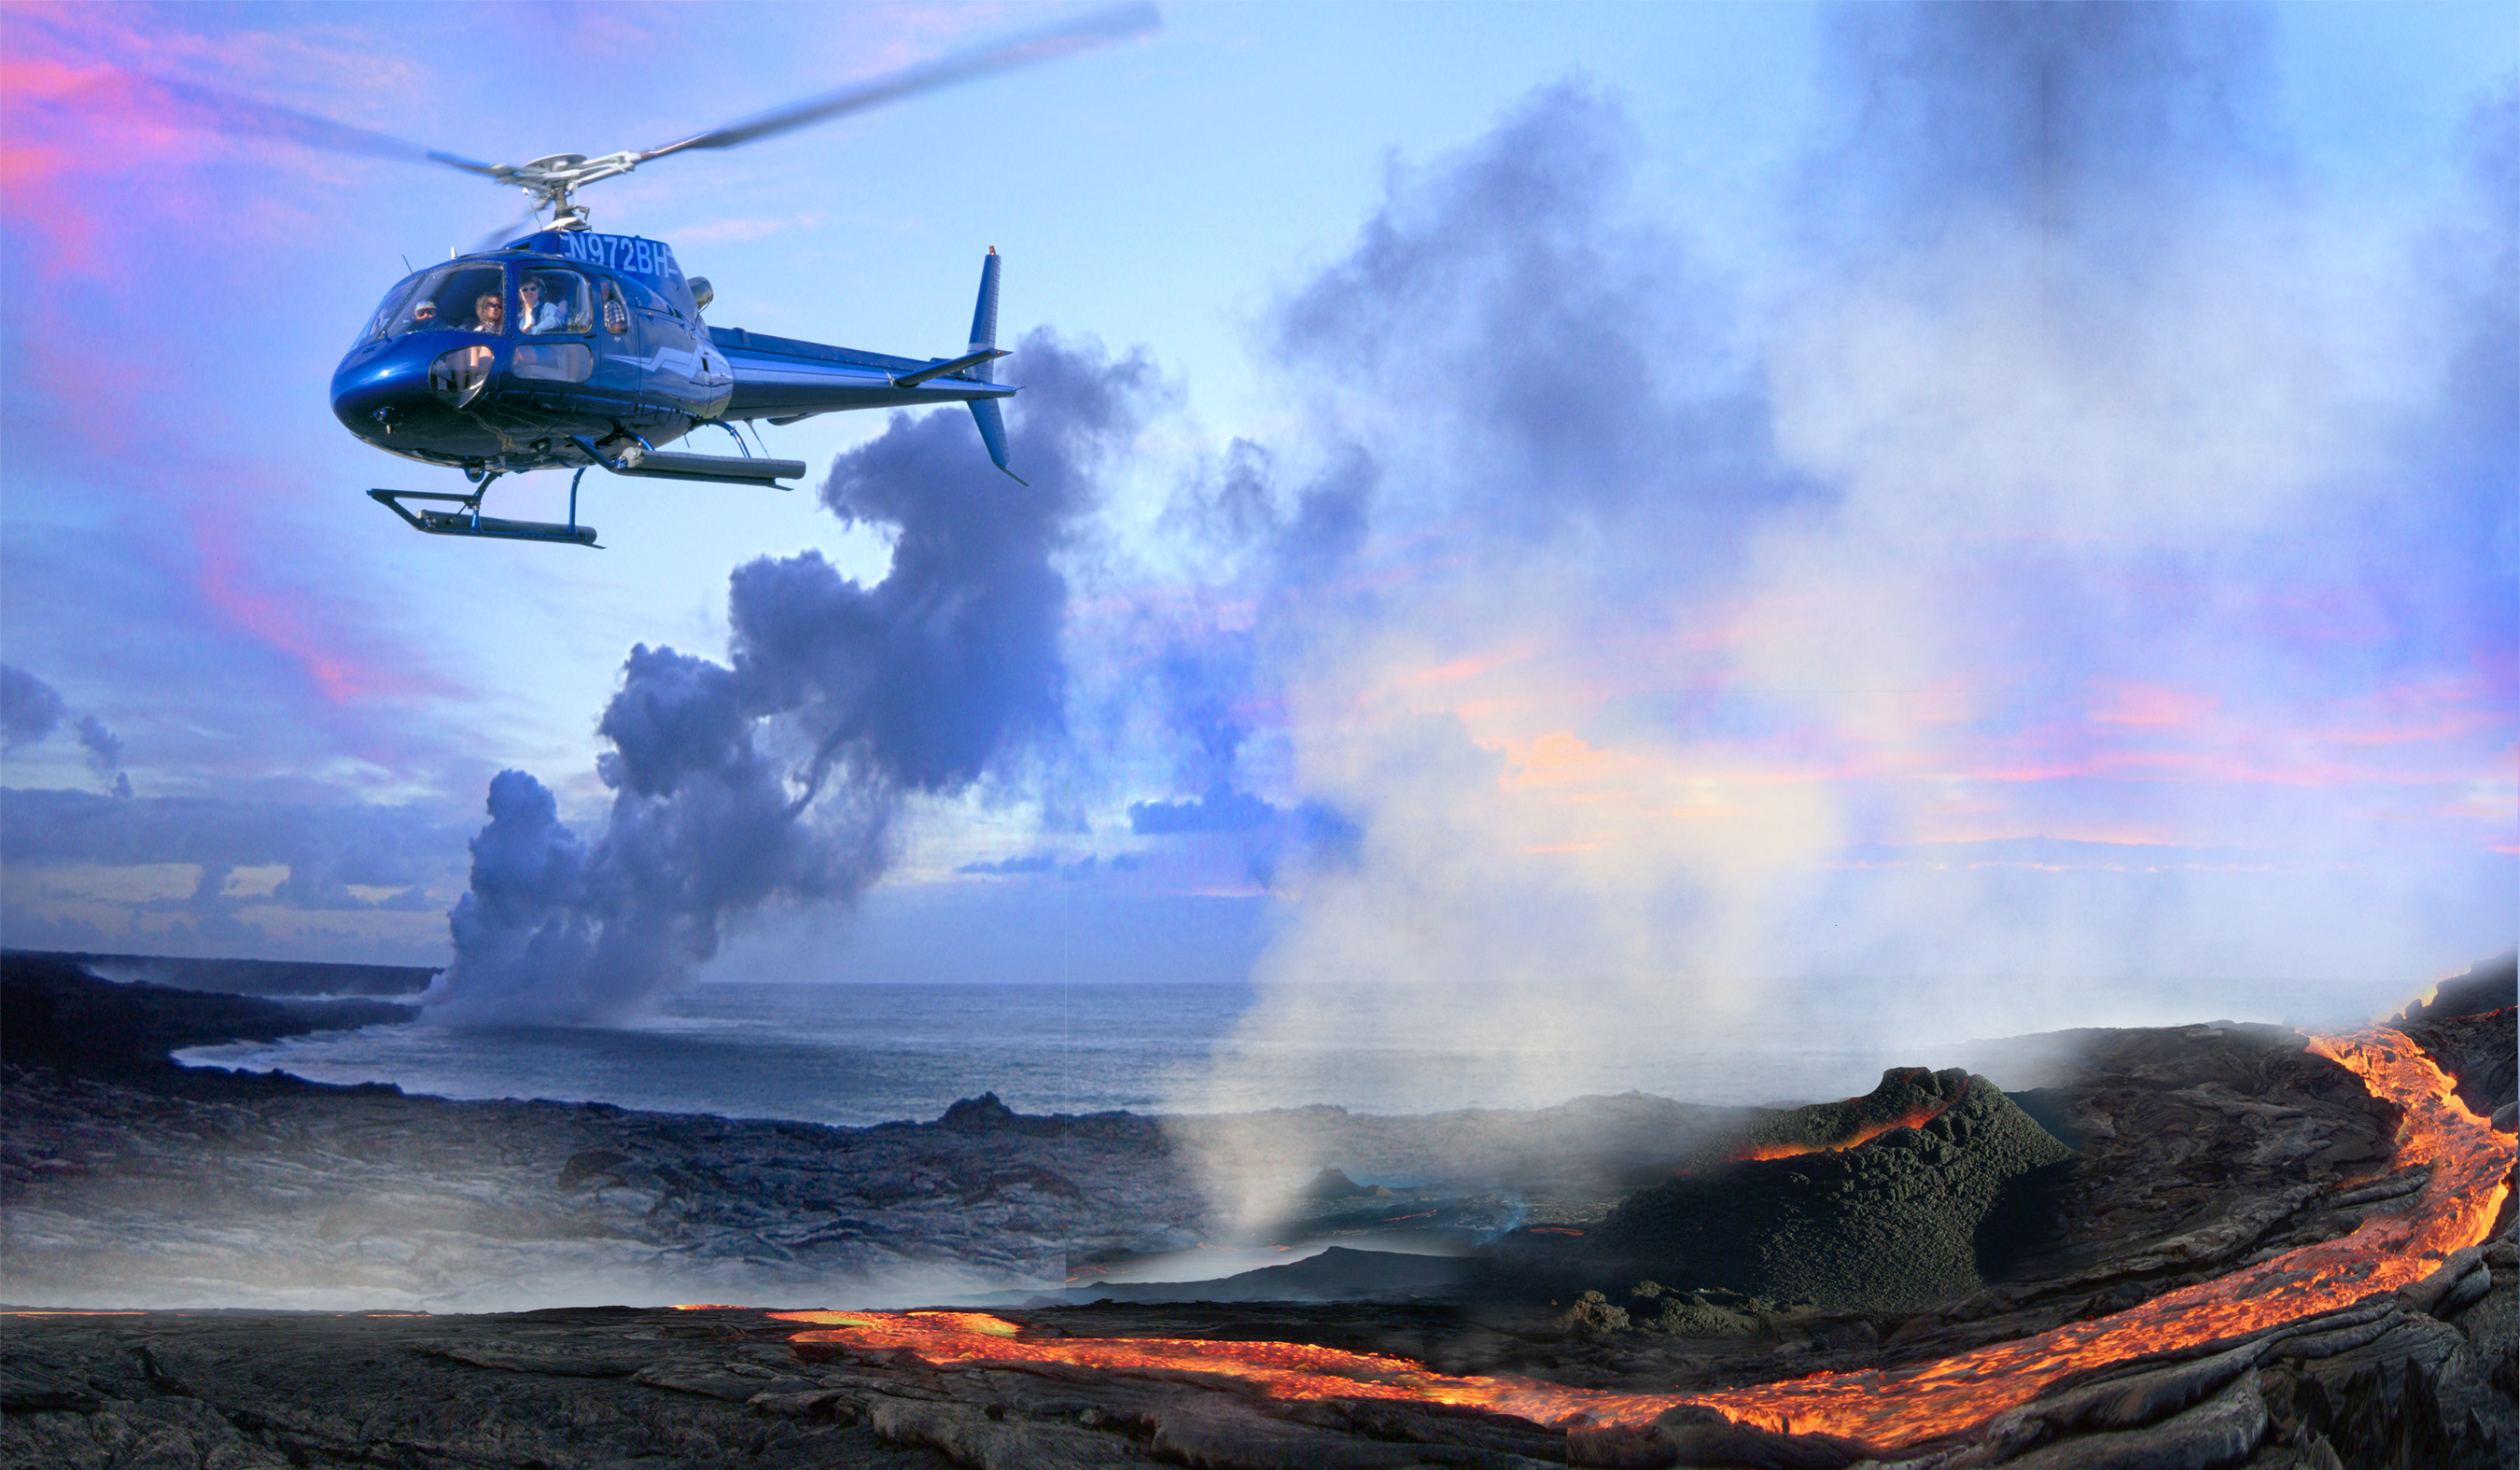 helicopter ride big island volcano with Kathy Clarke Hawaii on 354182 Kilauea Pele Smiling Eruption additionally Iceland likewise Air maui deluxe west maui molokai as well Coral Crater Full Zipline Tour as well Caption This Snake Up A Tree At Junglecruise.